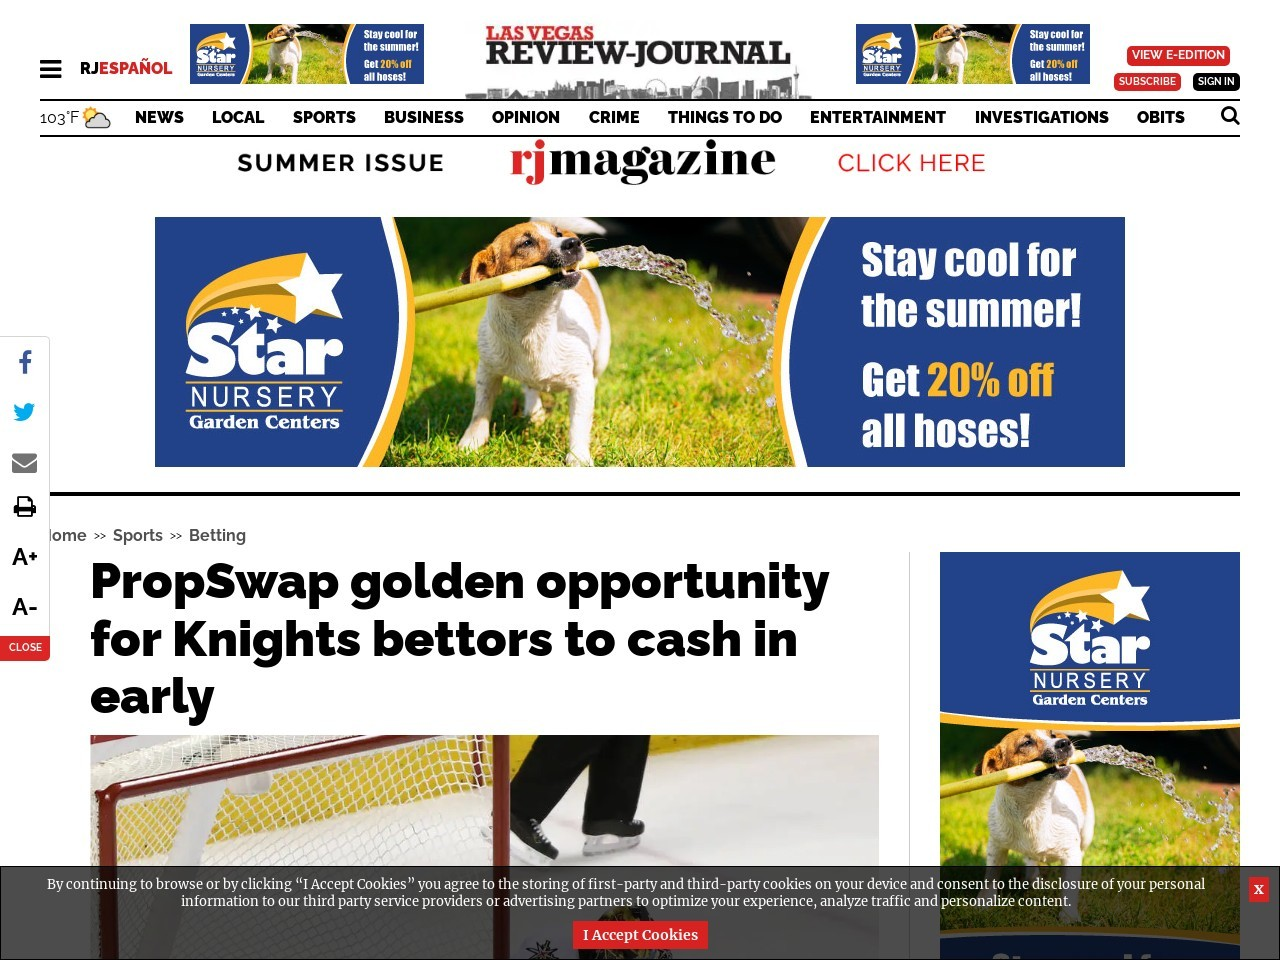 PropSwap golden opportunity for Knights bettors to cash in early